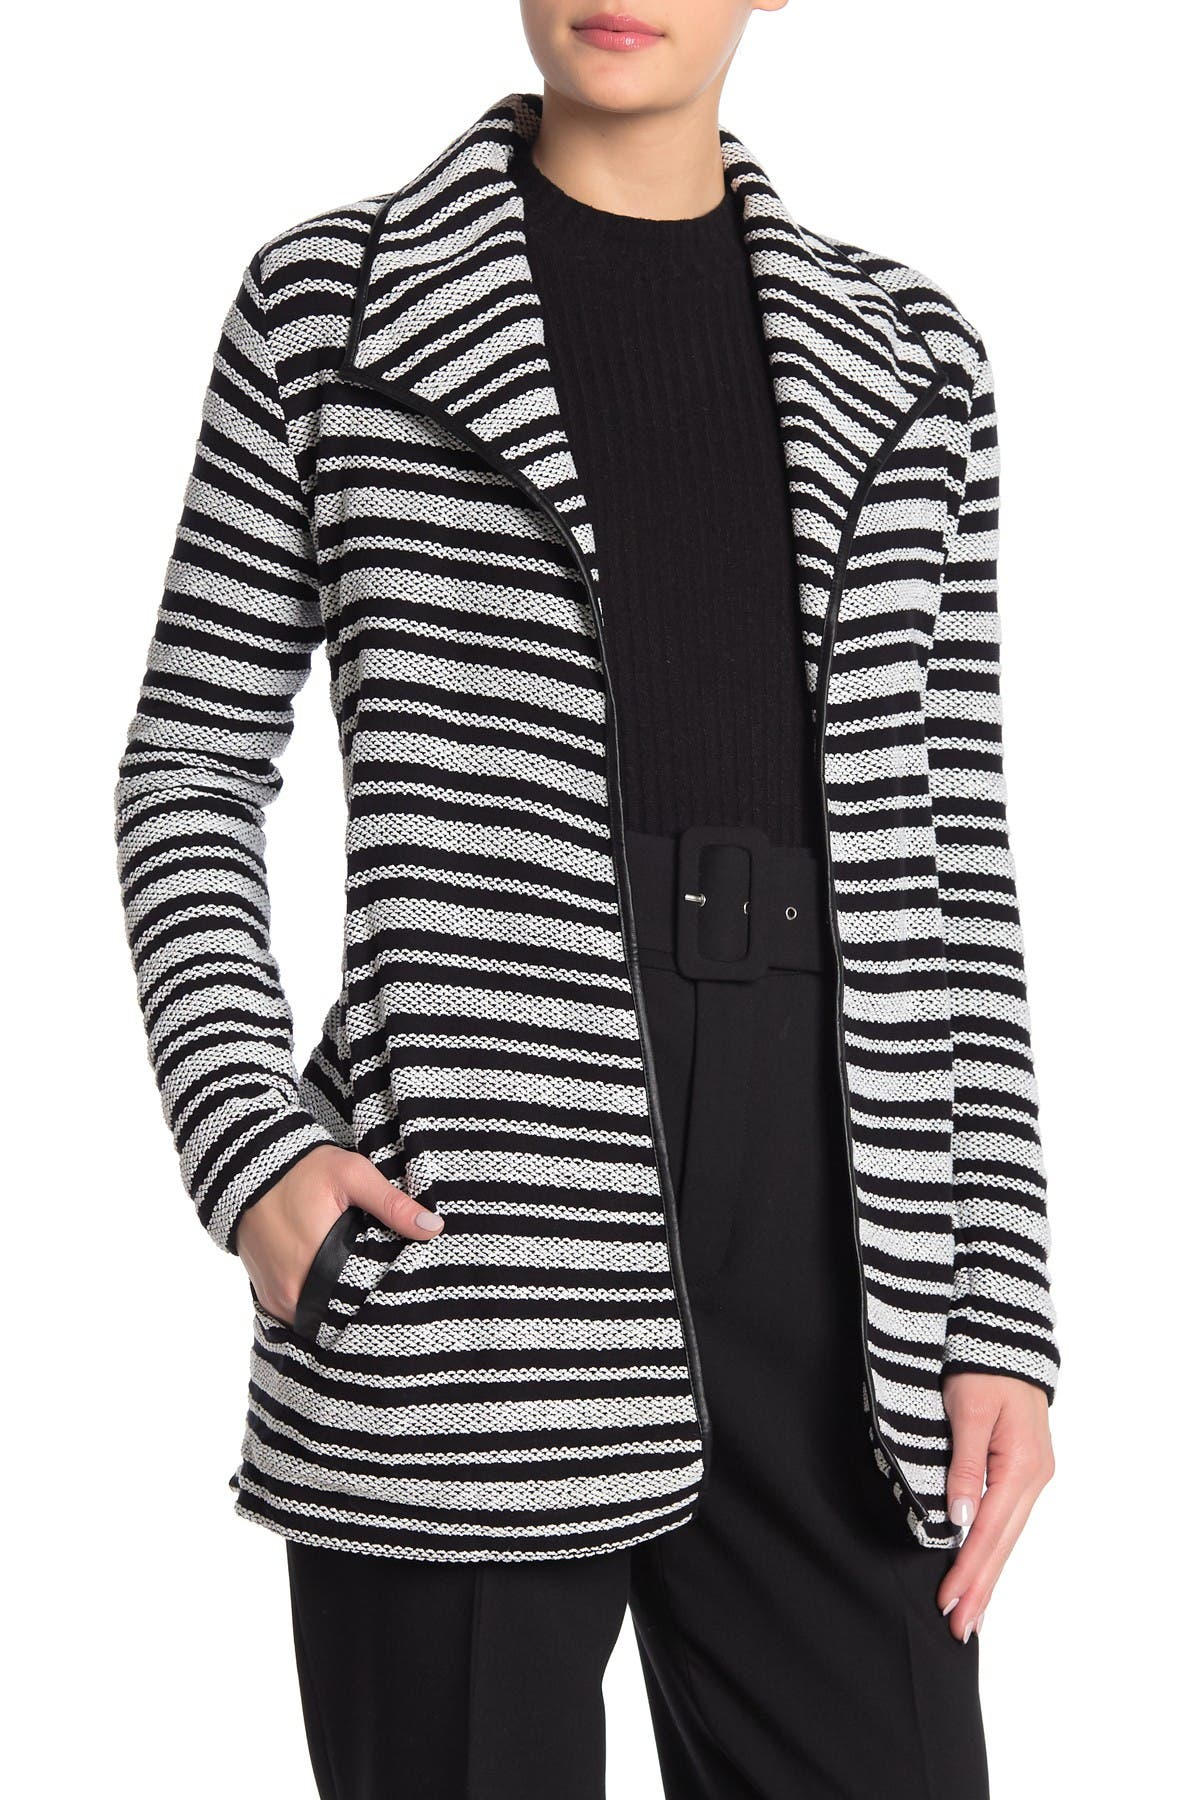 Image of Tart Xena Vegan Leather Trim Woven Coat